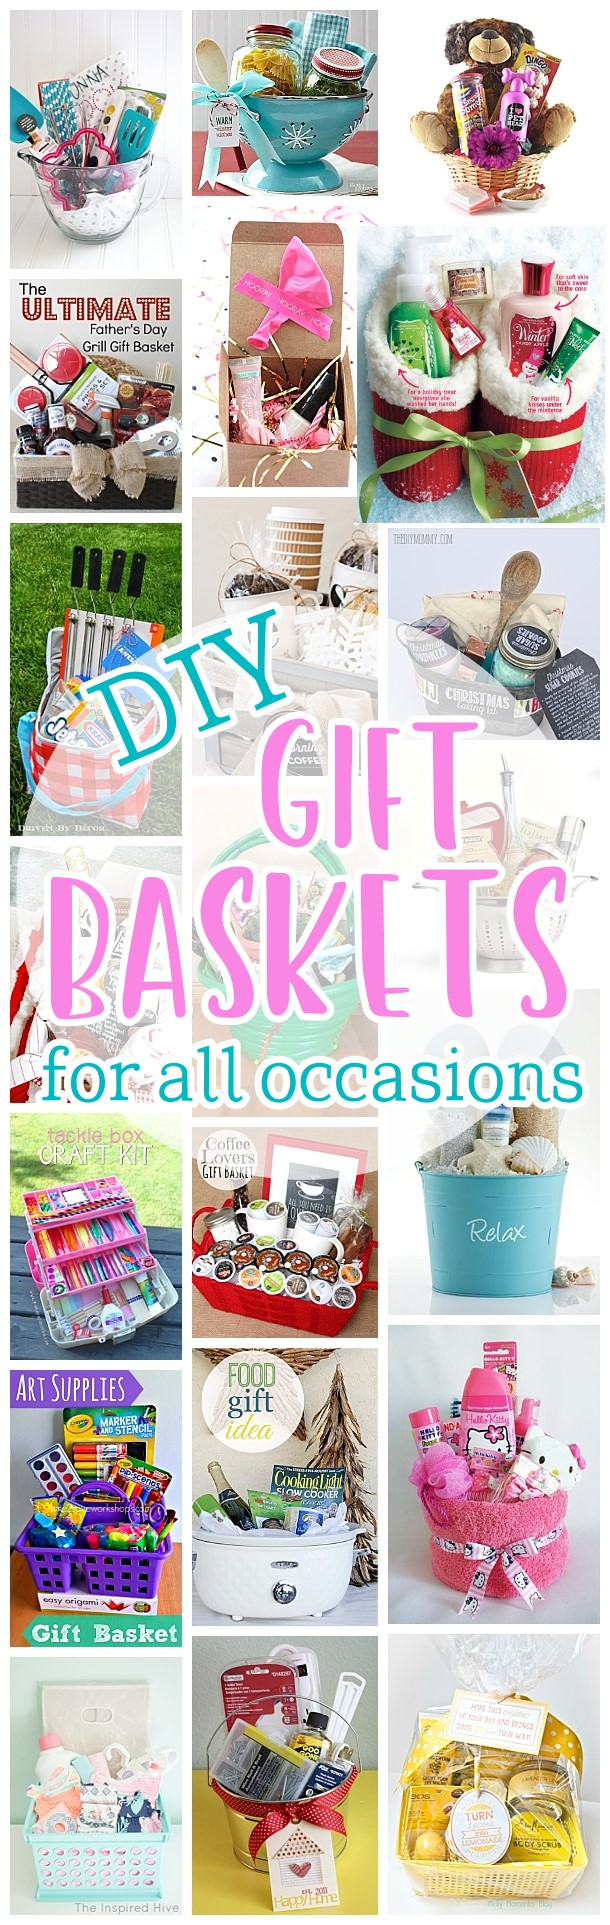 Do it Yourself Gift Baskets Ideas for Any and All Occasions - Perfect DIY Gift Baskets for Christmas - Birthdays - Thank You Gifts - Housewarmings - Baby Showers or anytime! #giftbaskets #giftbasketideas #diygiftbaskets #gifthampers #easygifts #giftideas #birthdaygifts #diybirthdaygifts #birthdaygiftideas